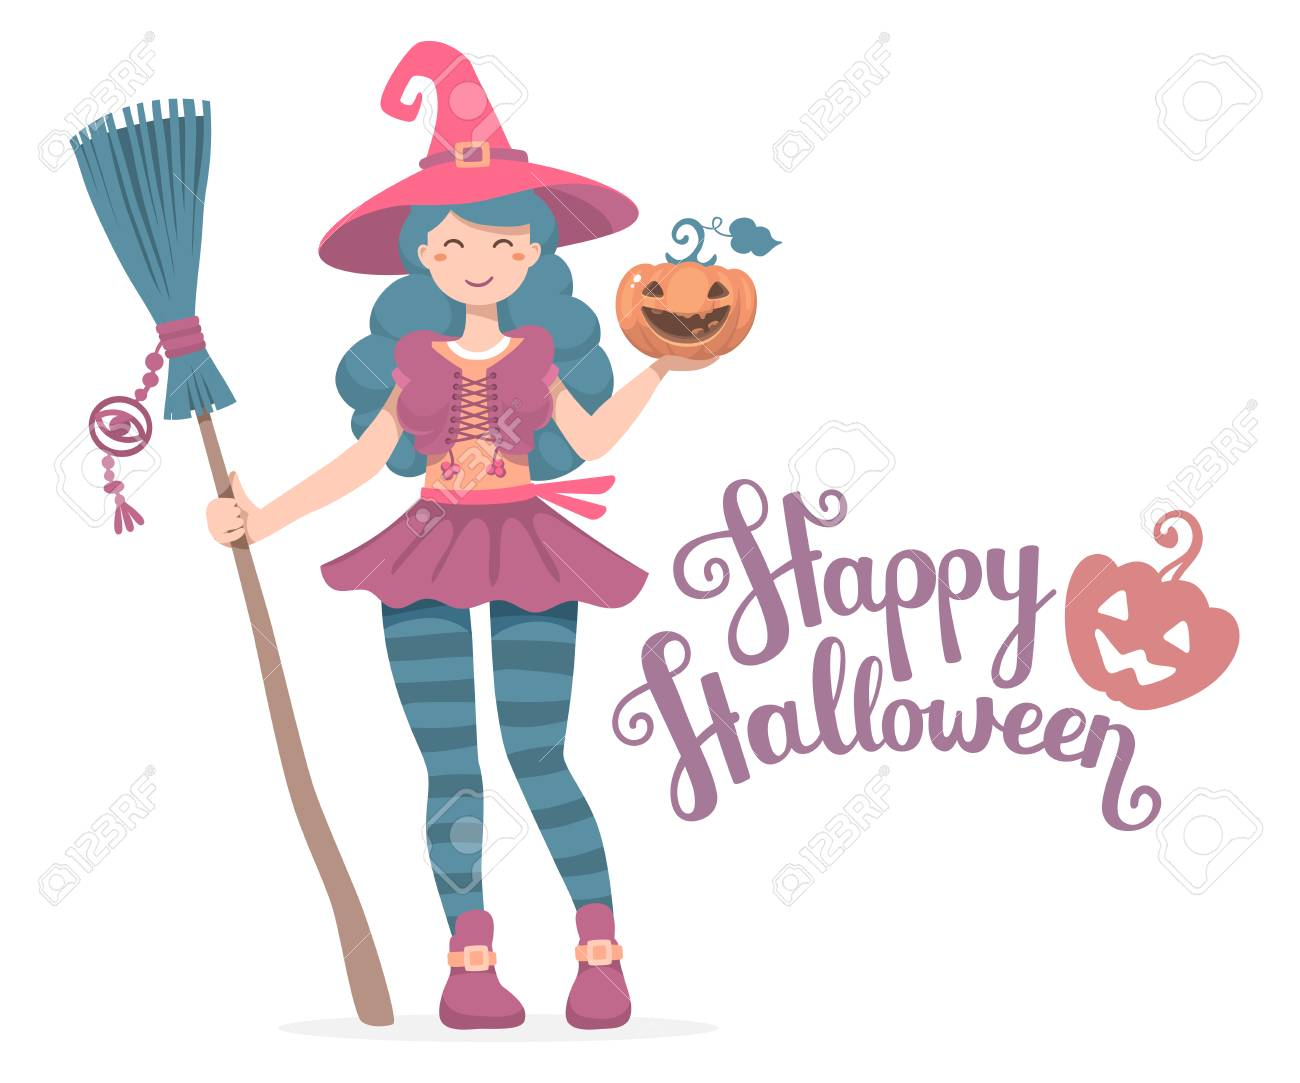 Vector Colorful Halloween Illustration Of Witch Character With Broom, Hat,  Pumpkin Wishes Happy Halloween